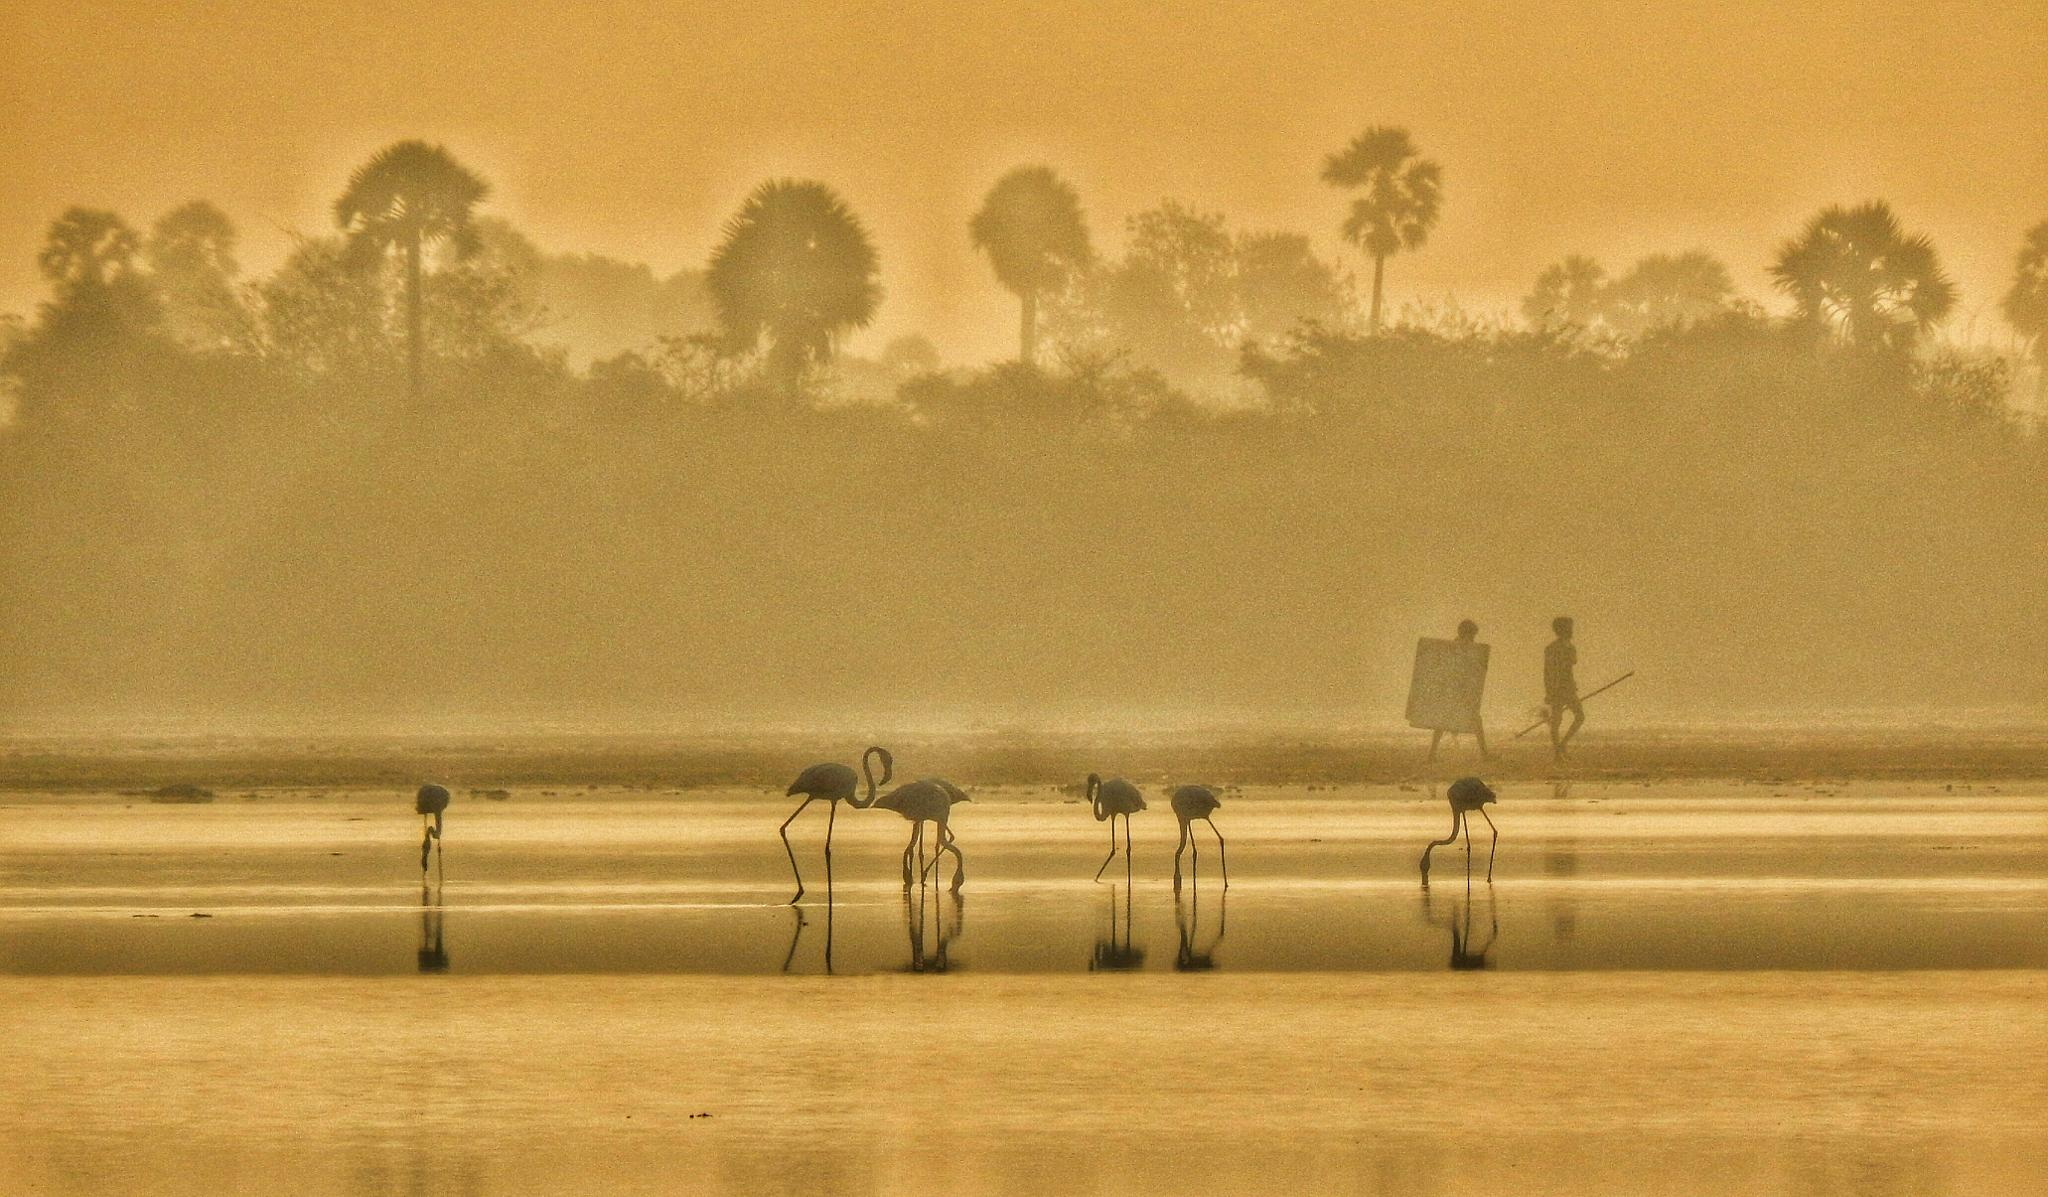 the hunters and the birds by Aritra ghosh